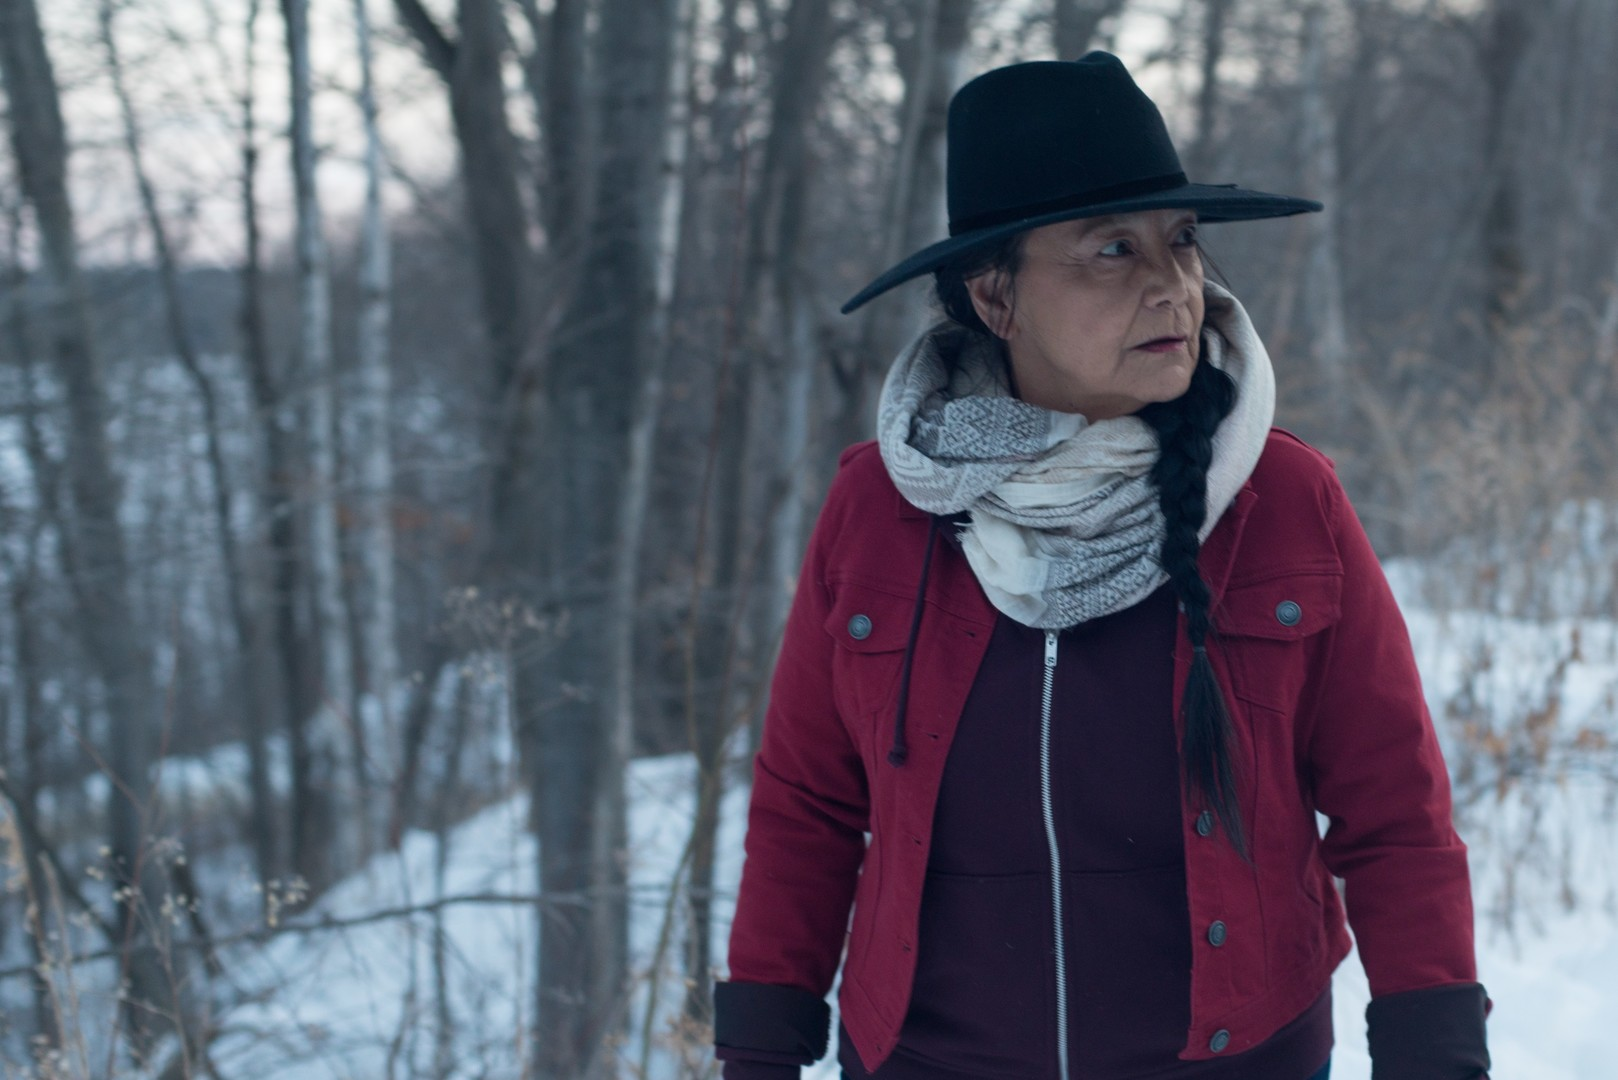 Tantoo Cardinal will be awarded the Lifetime Achievement Award from the Santa Fe Independent Film Festival.